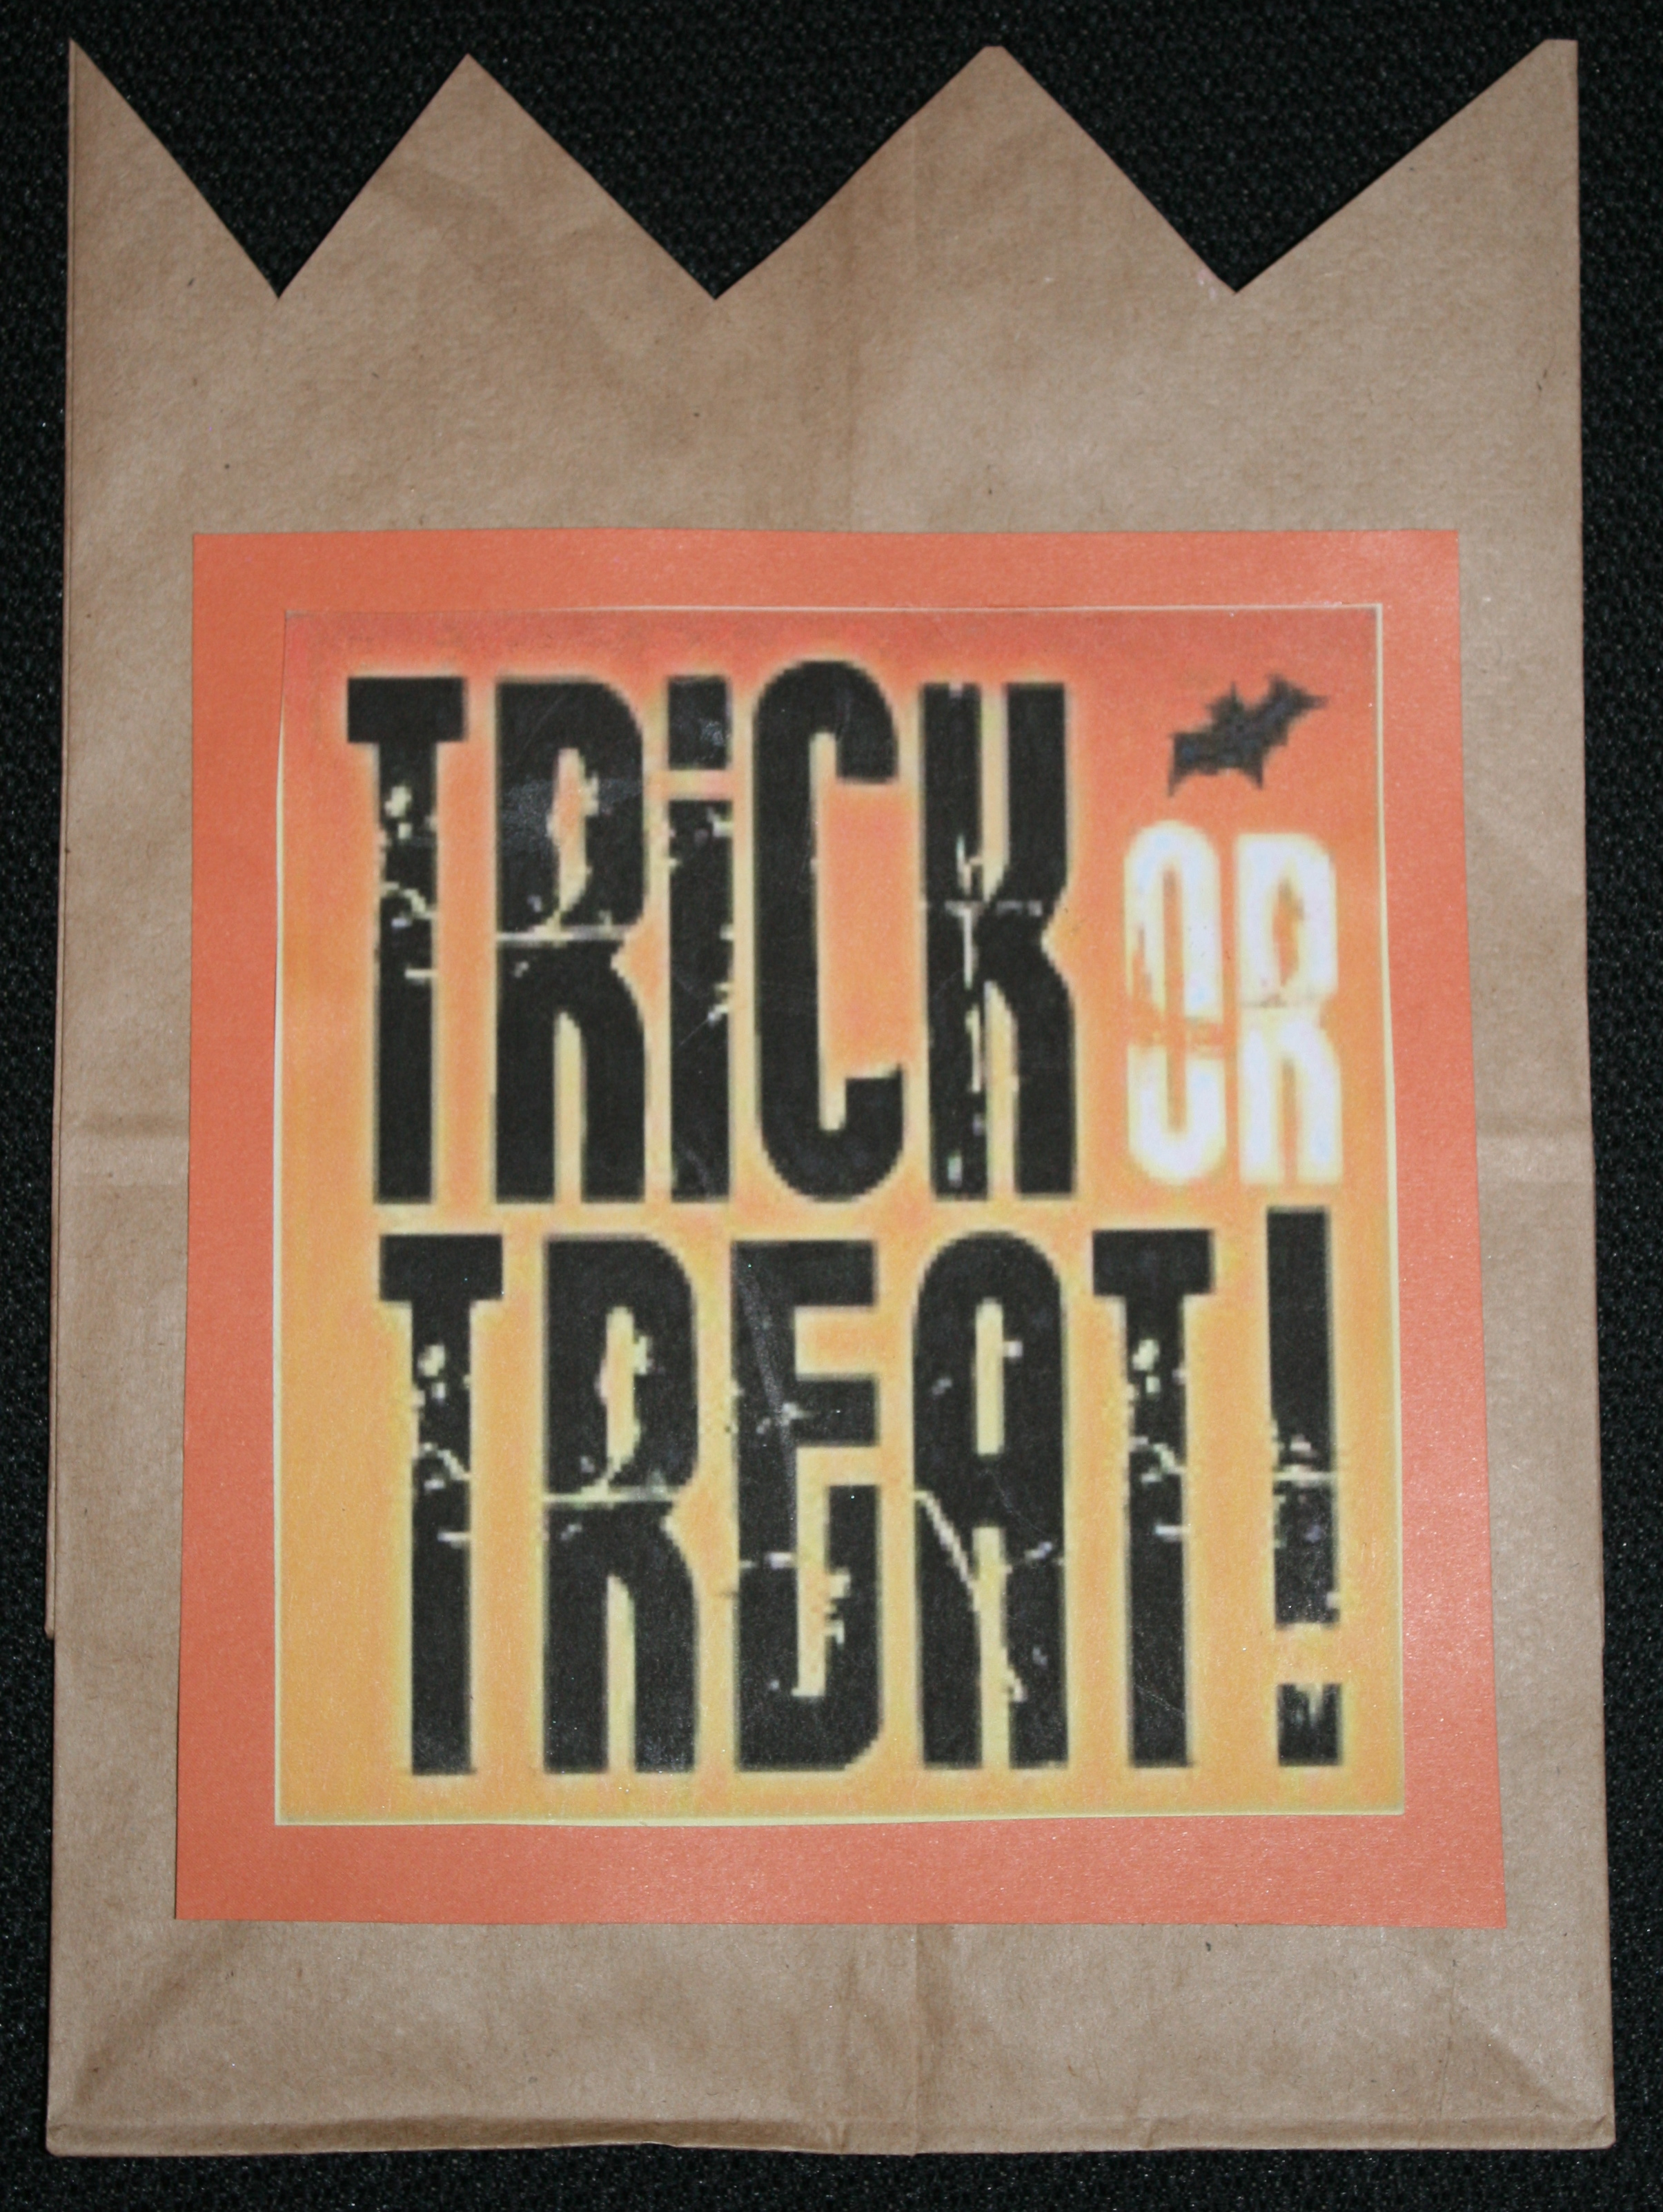 trick or treat bags, halloween treat bags, october treat bags, 3-D shapes, regular shapes, shape certificate, 3-D shape certificate, shape activities, shape lessons, 3-D activities, 3-D lessons,